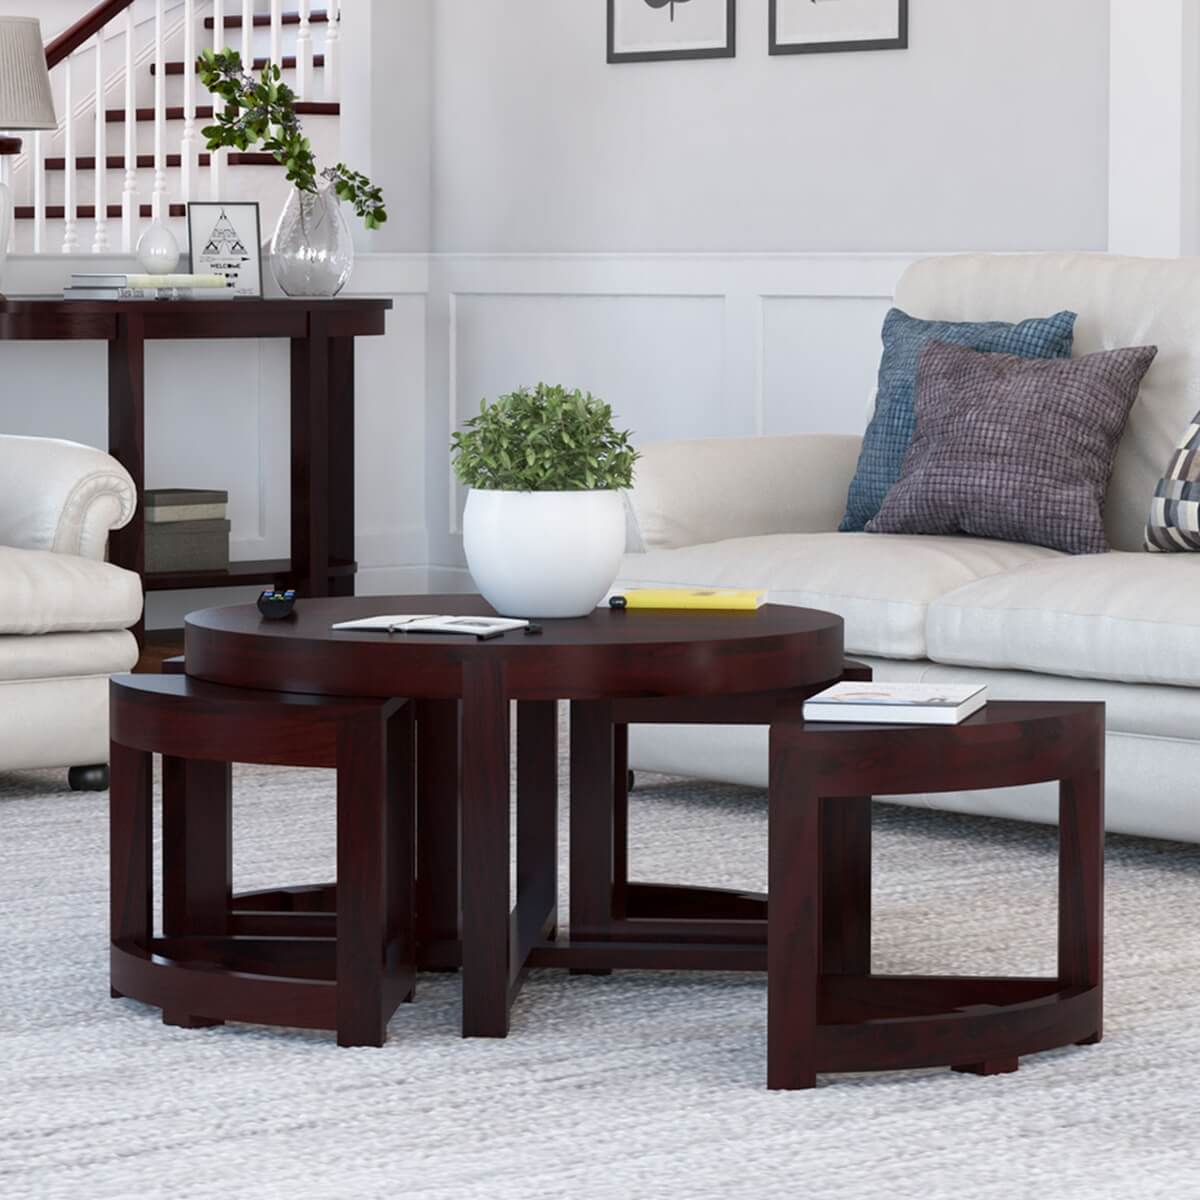 Round Table With Stools: Round Coffee Table With 4 Nested Stools